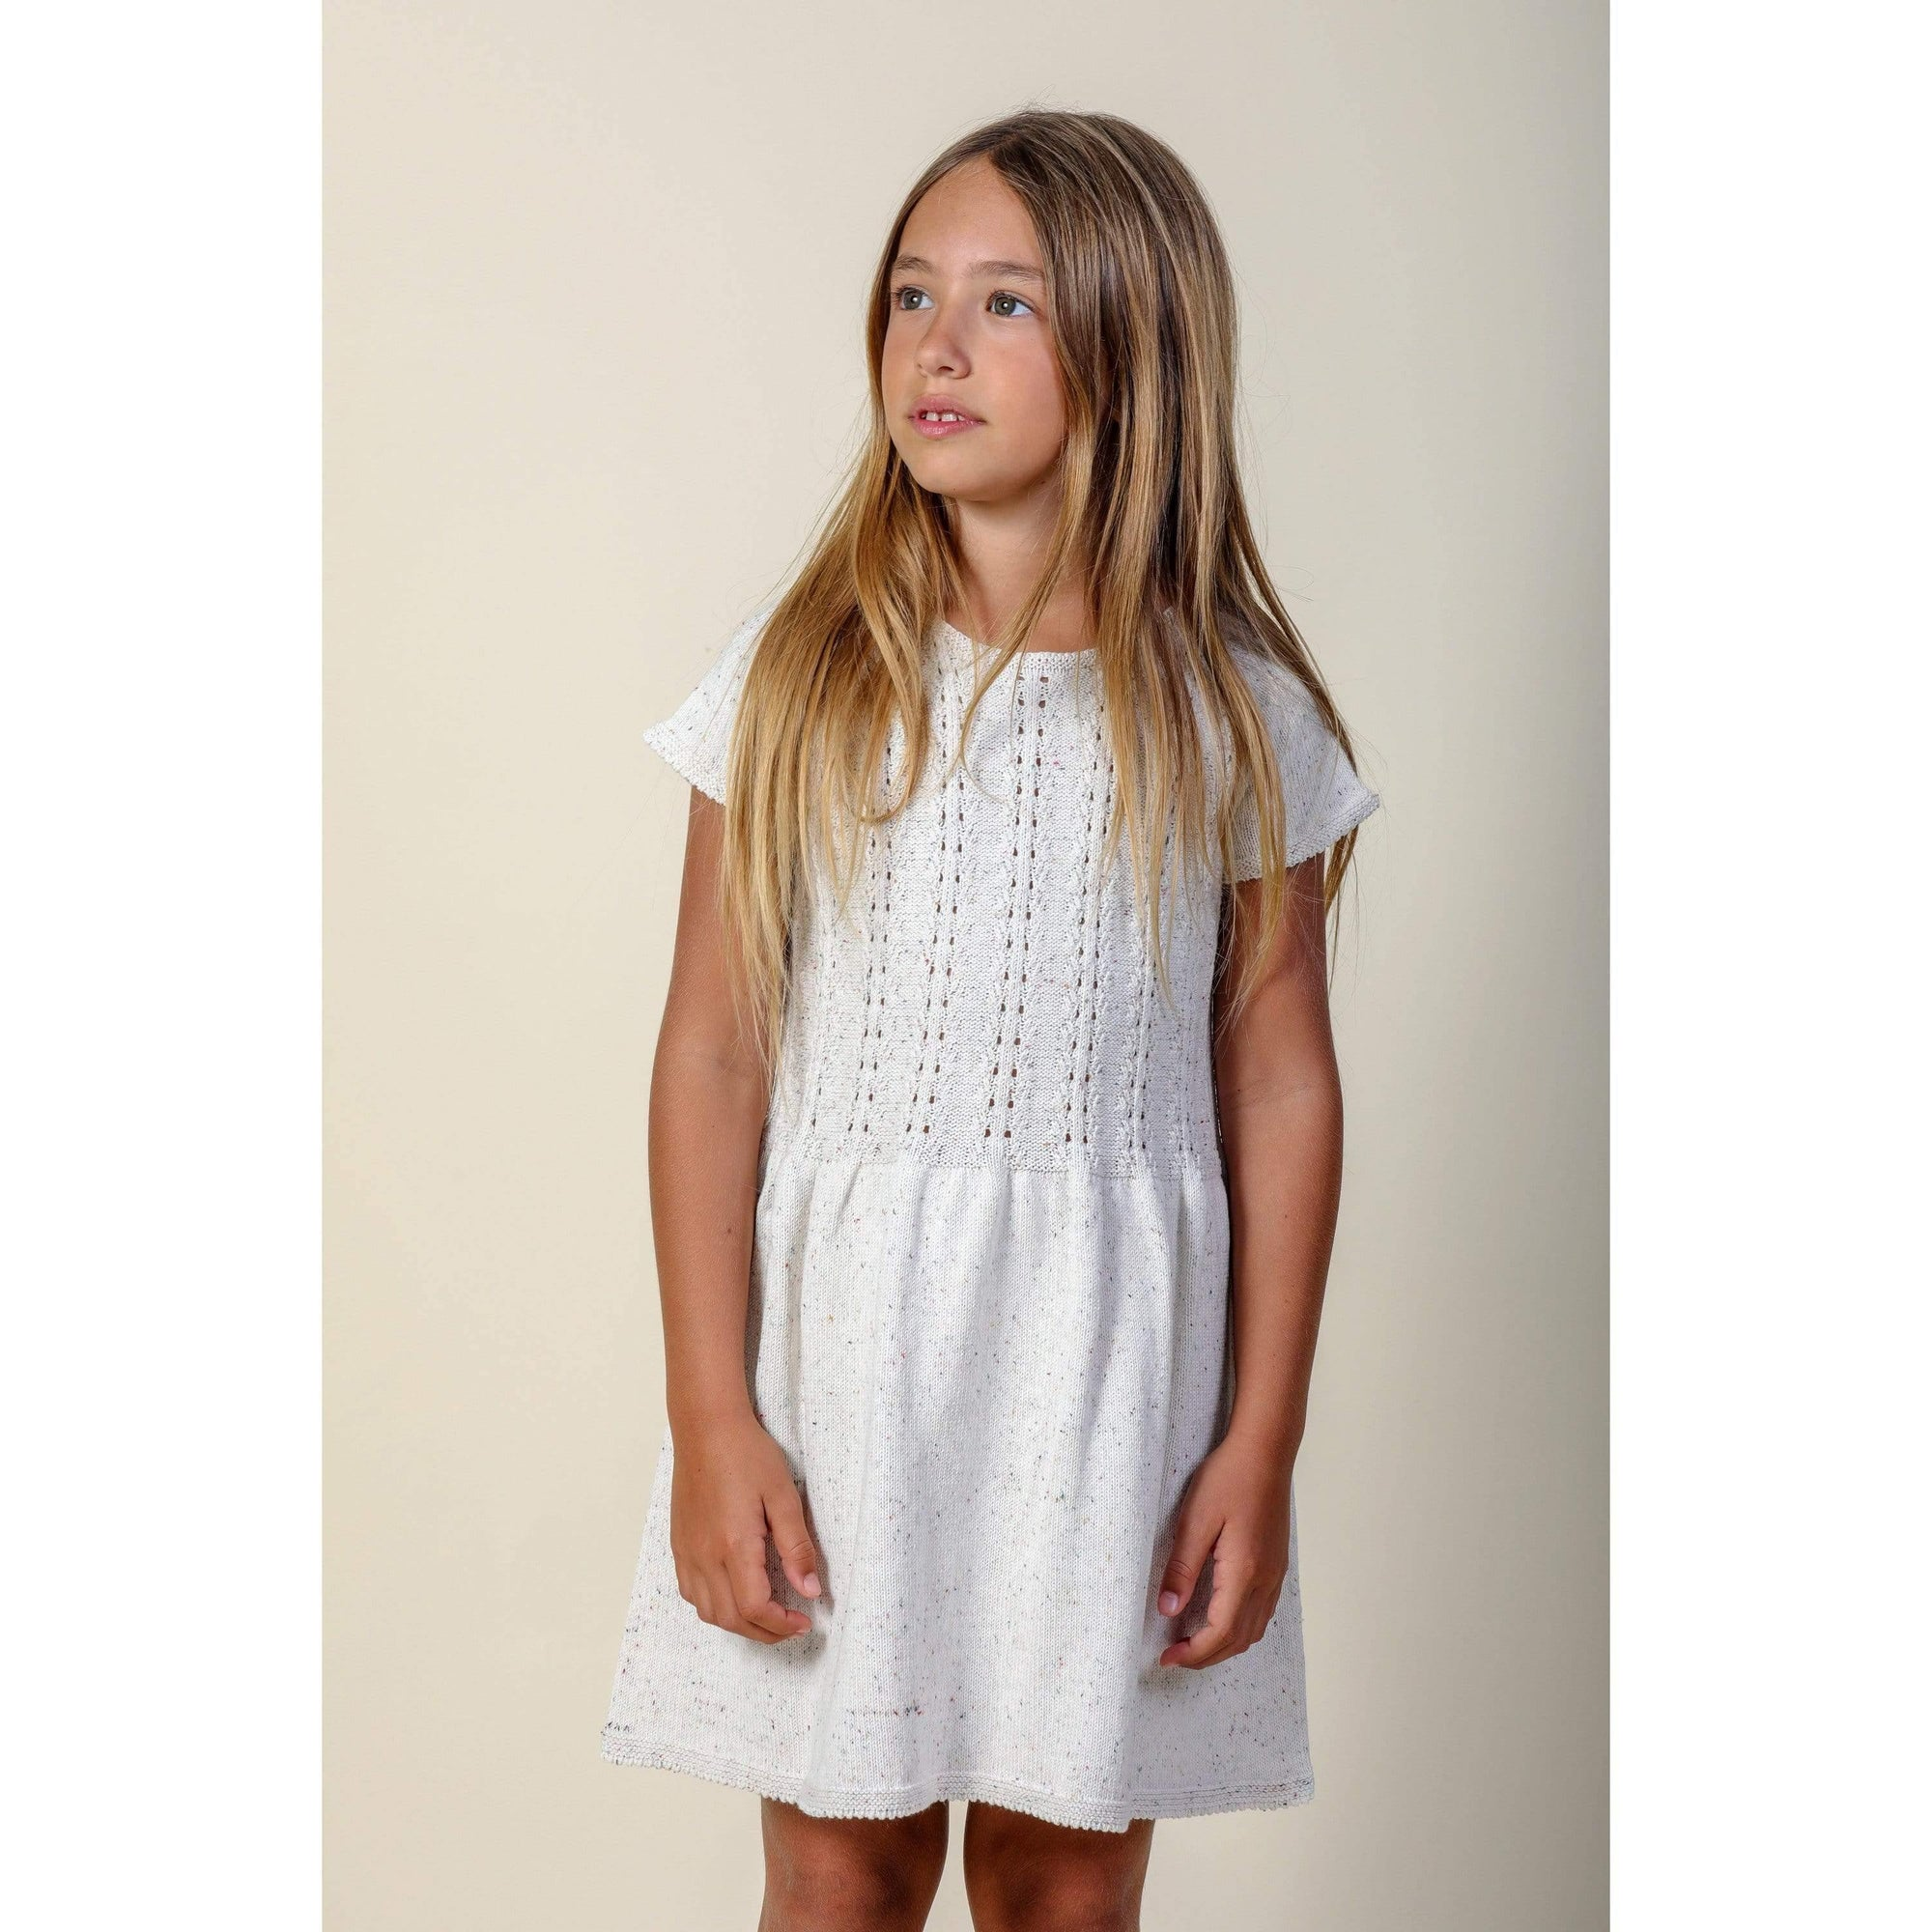 Nueces Knitted Dress